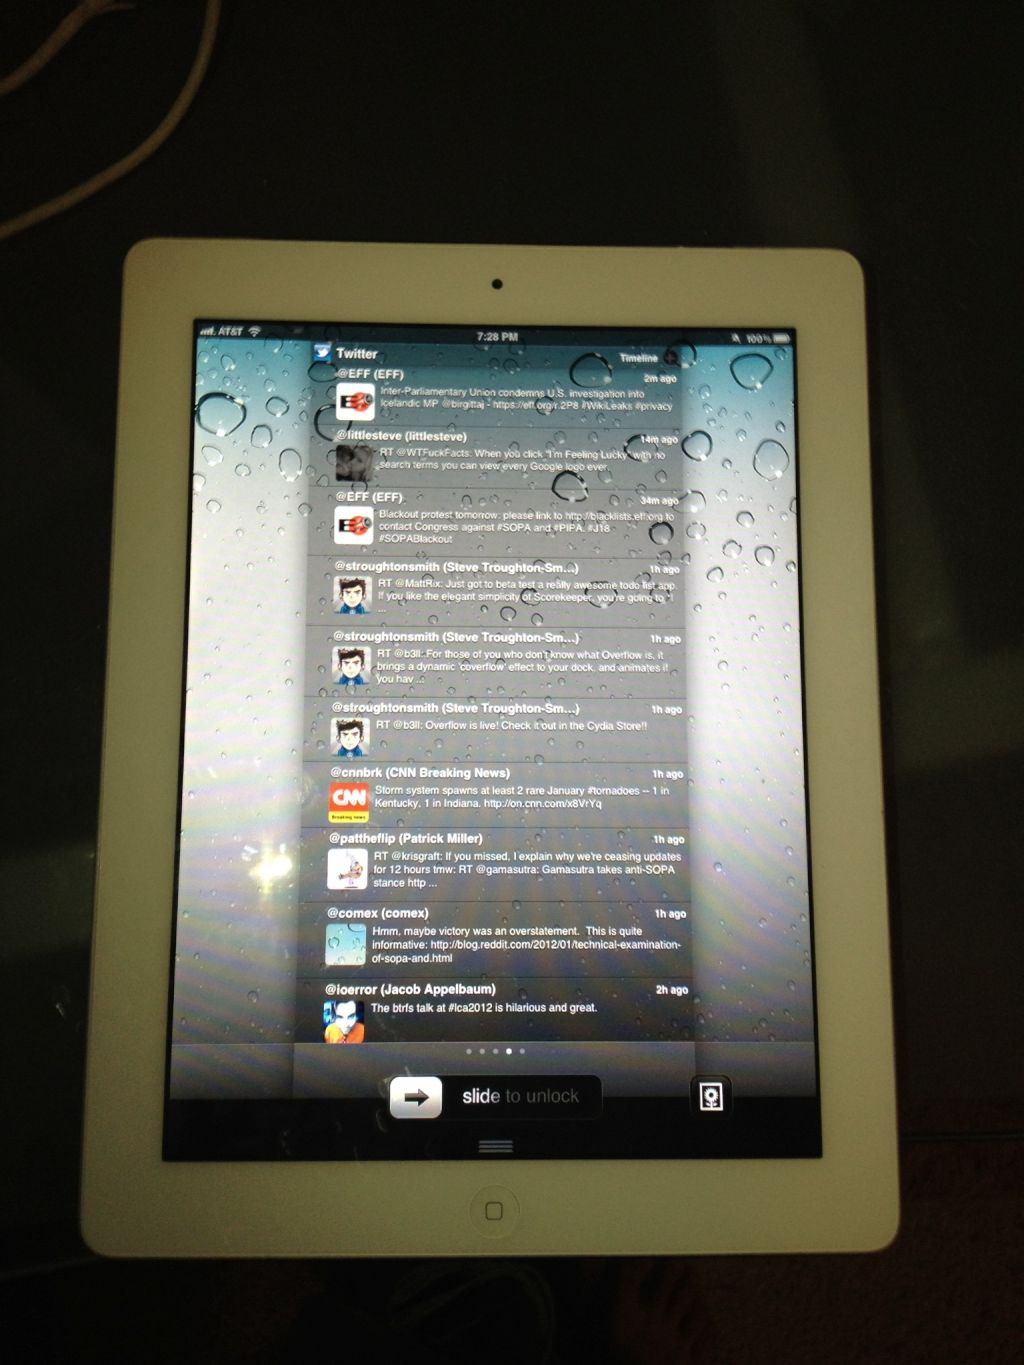 Photos of Jailbroken iPad 2 on iOS 5.0.1 Running Cydia And Jailbreak.